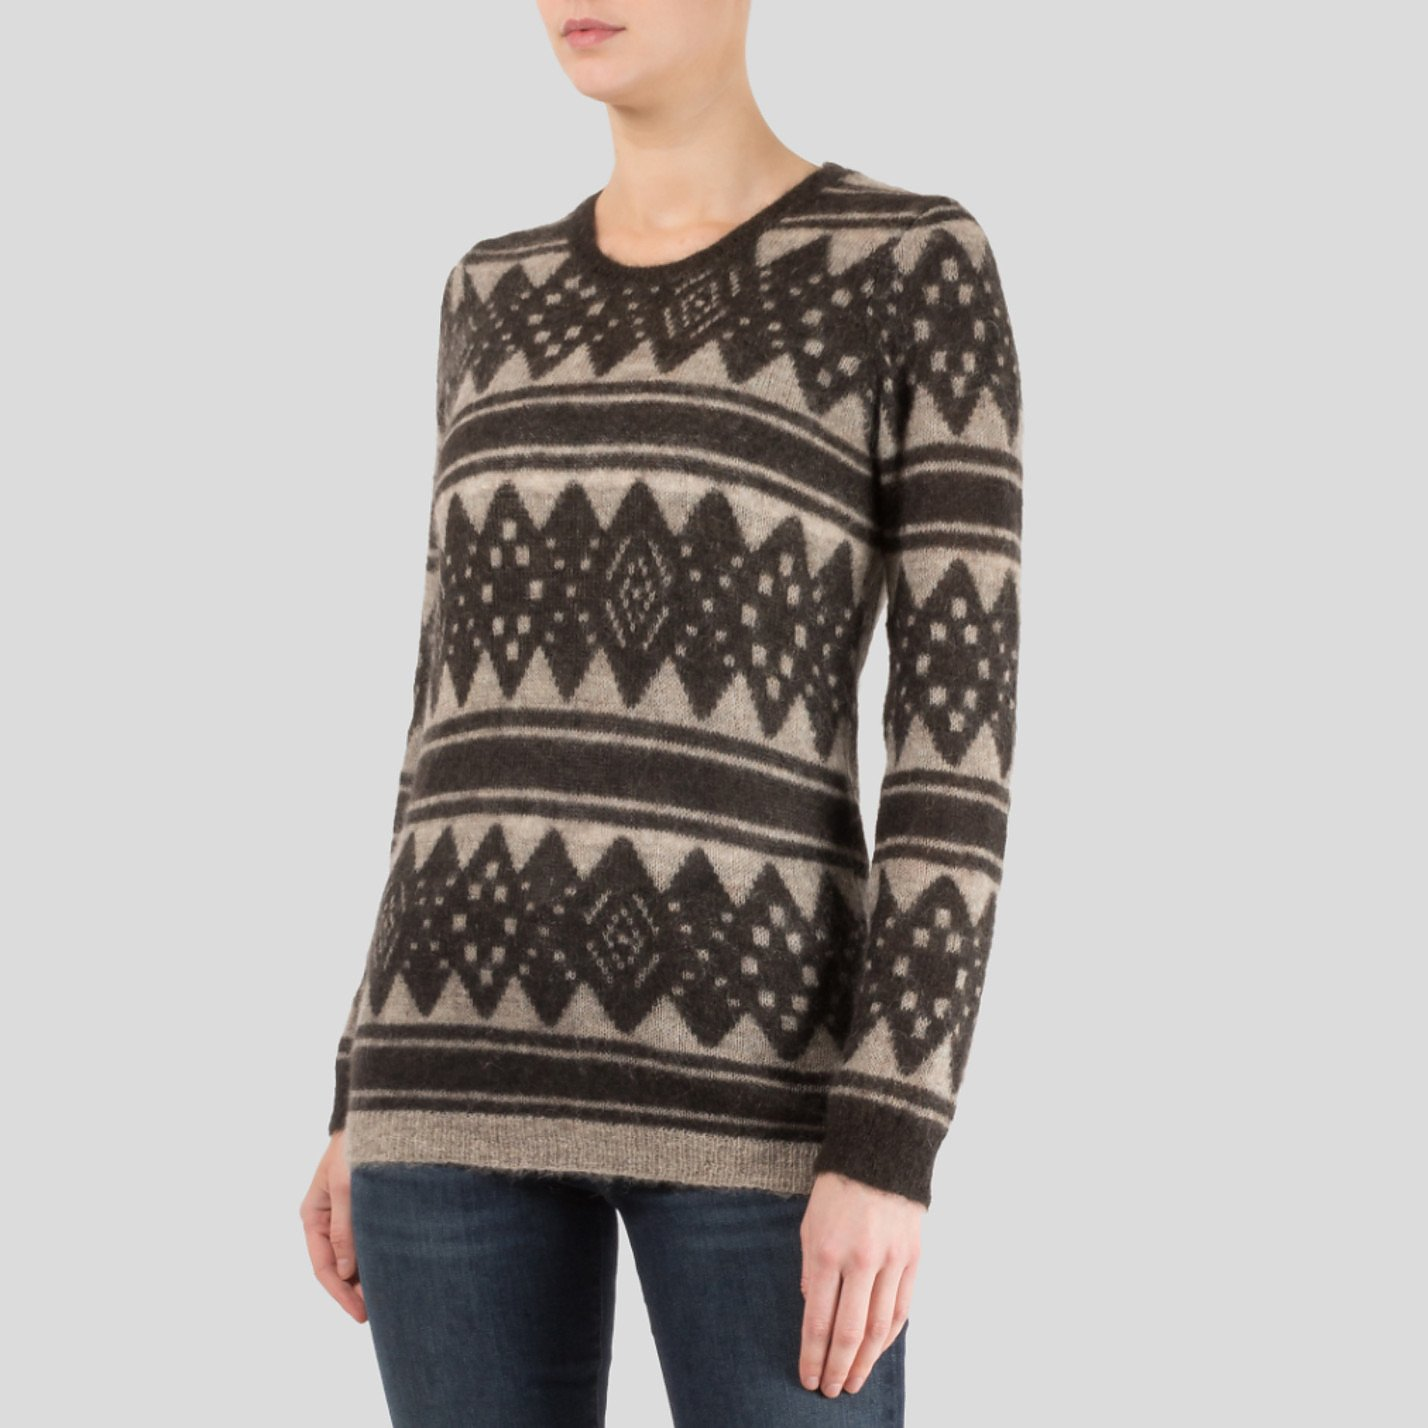 Isabel Marant Étoile Patterned Mohair Sweater